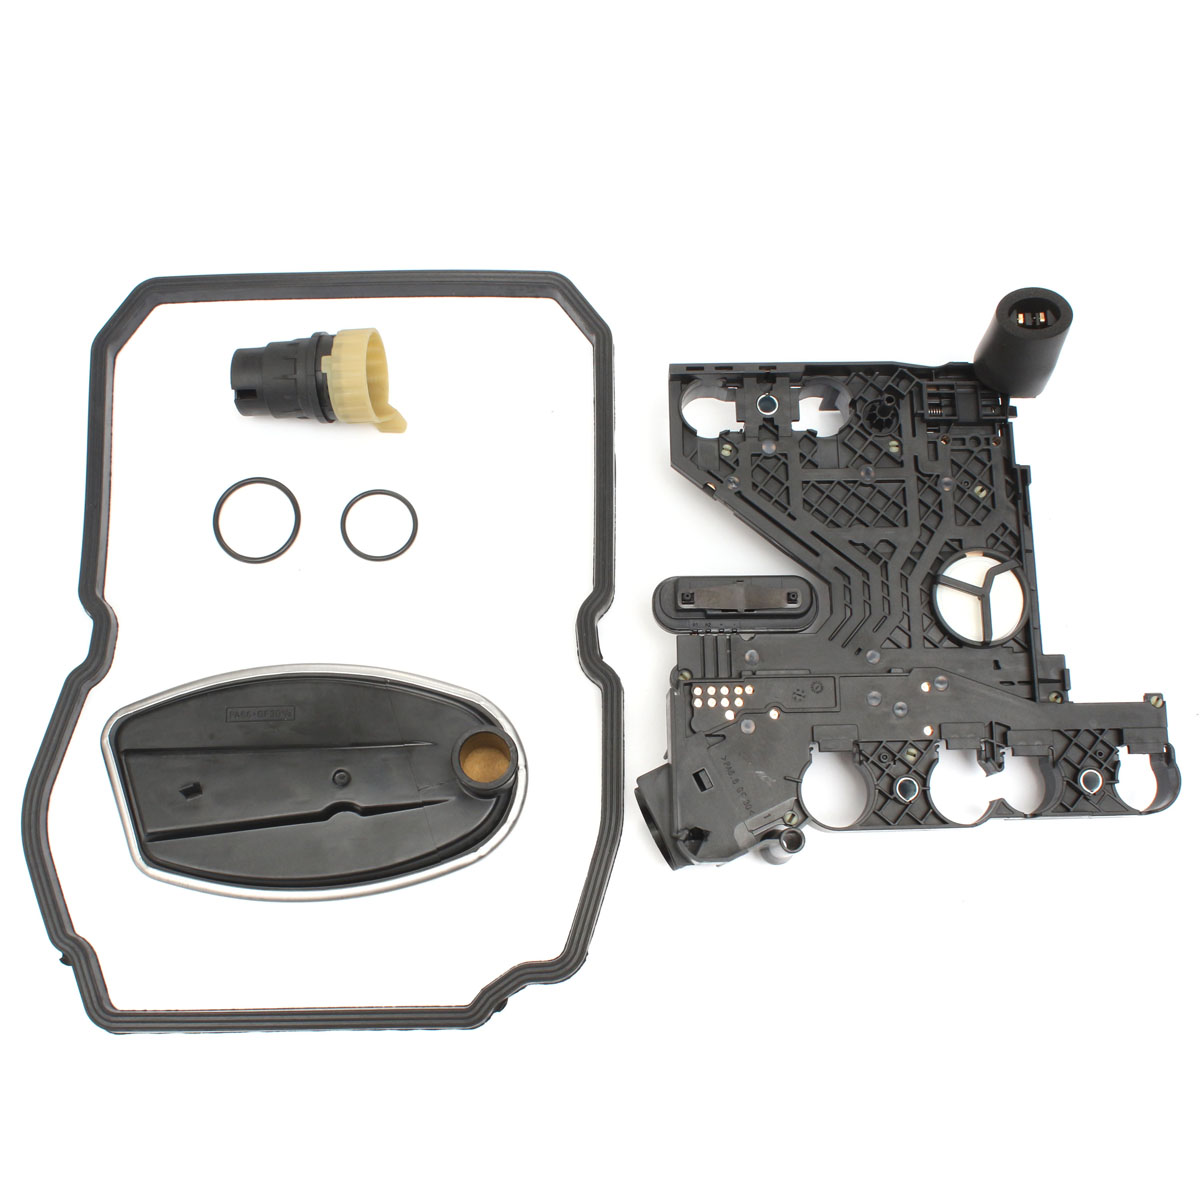 722.6 Gearbox Conductor Plate Connector Filter Kit for Benz for Mercedes 1402700161(China)